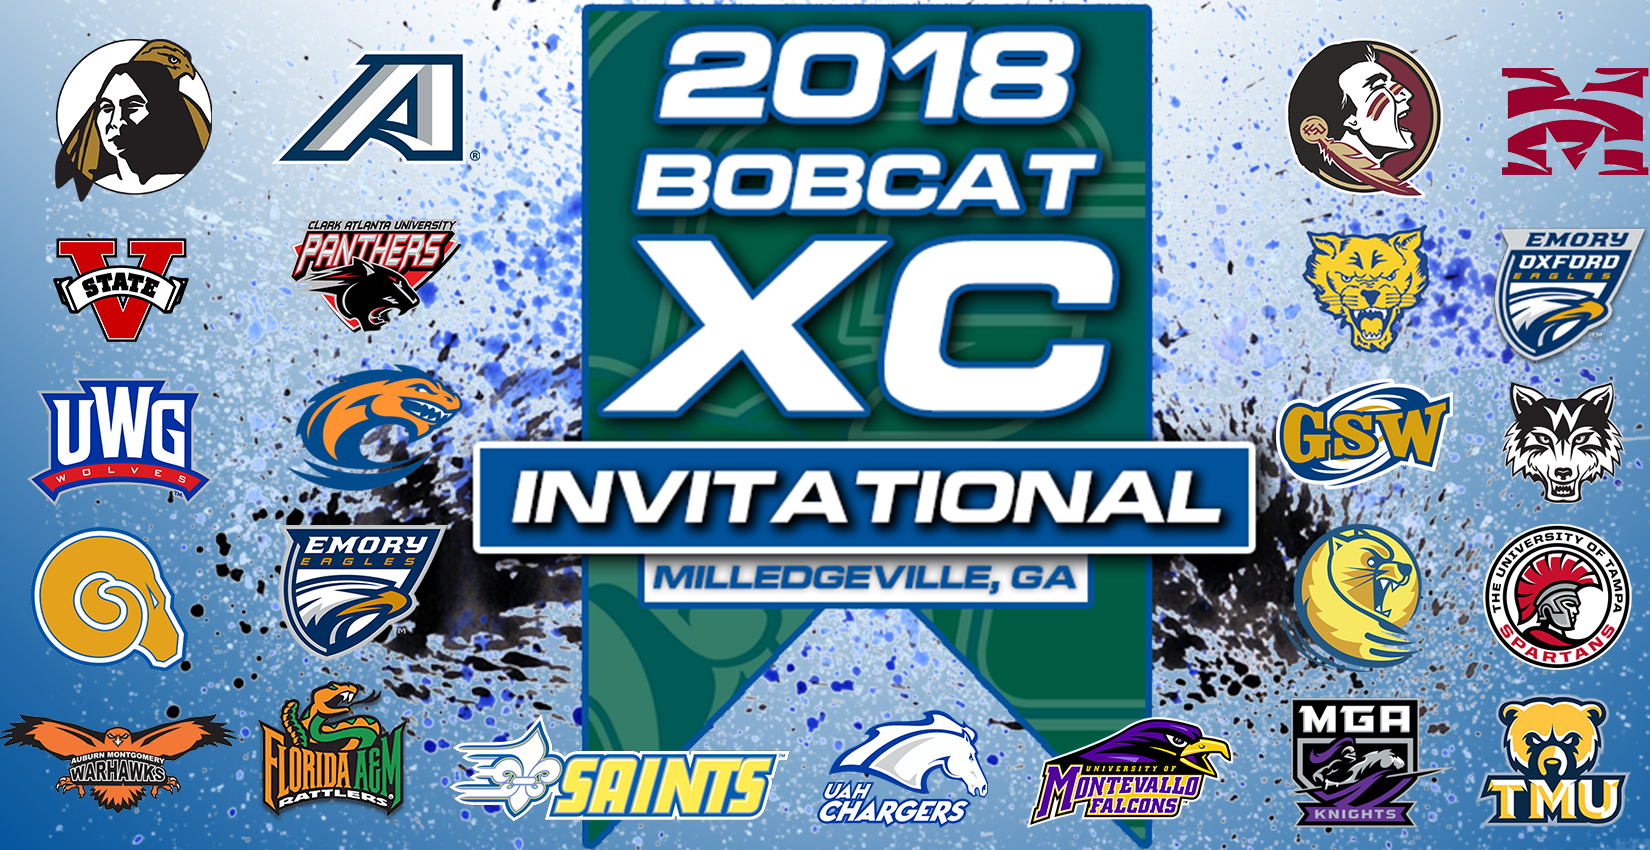 2018 Bobcat Invitational